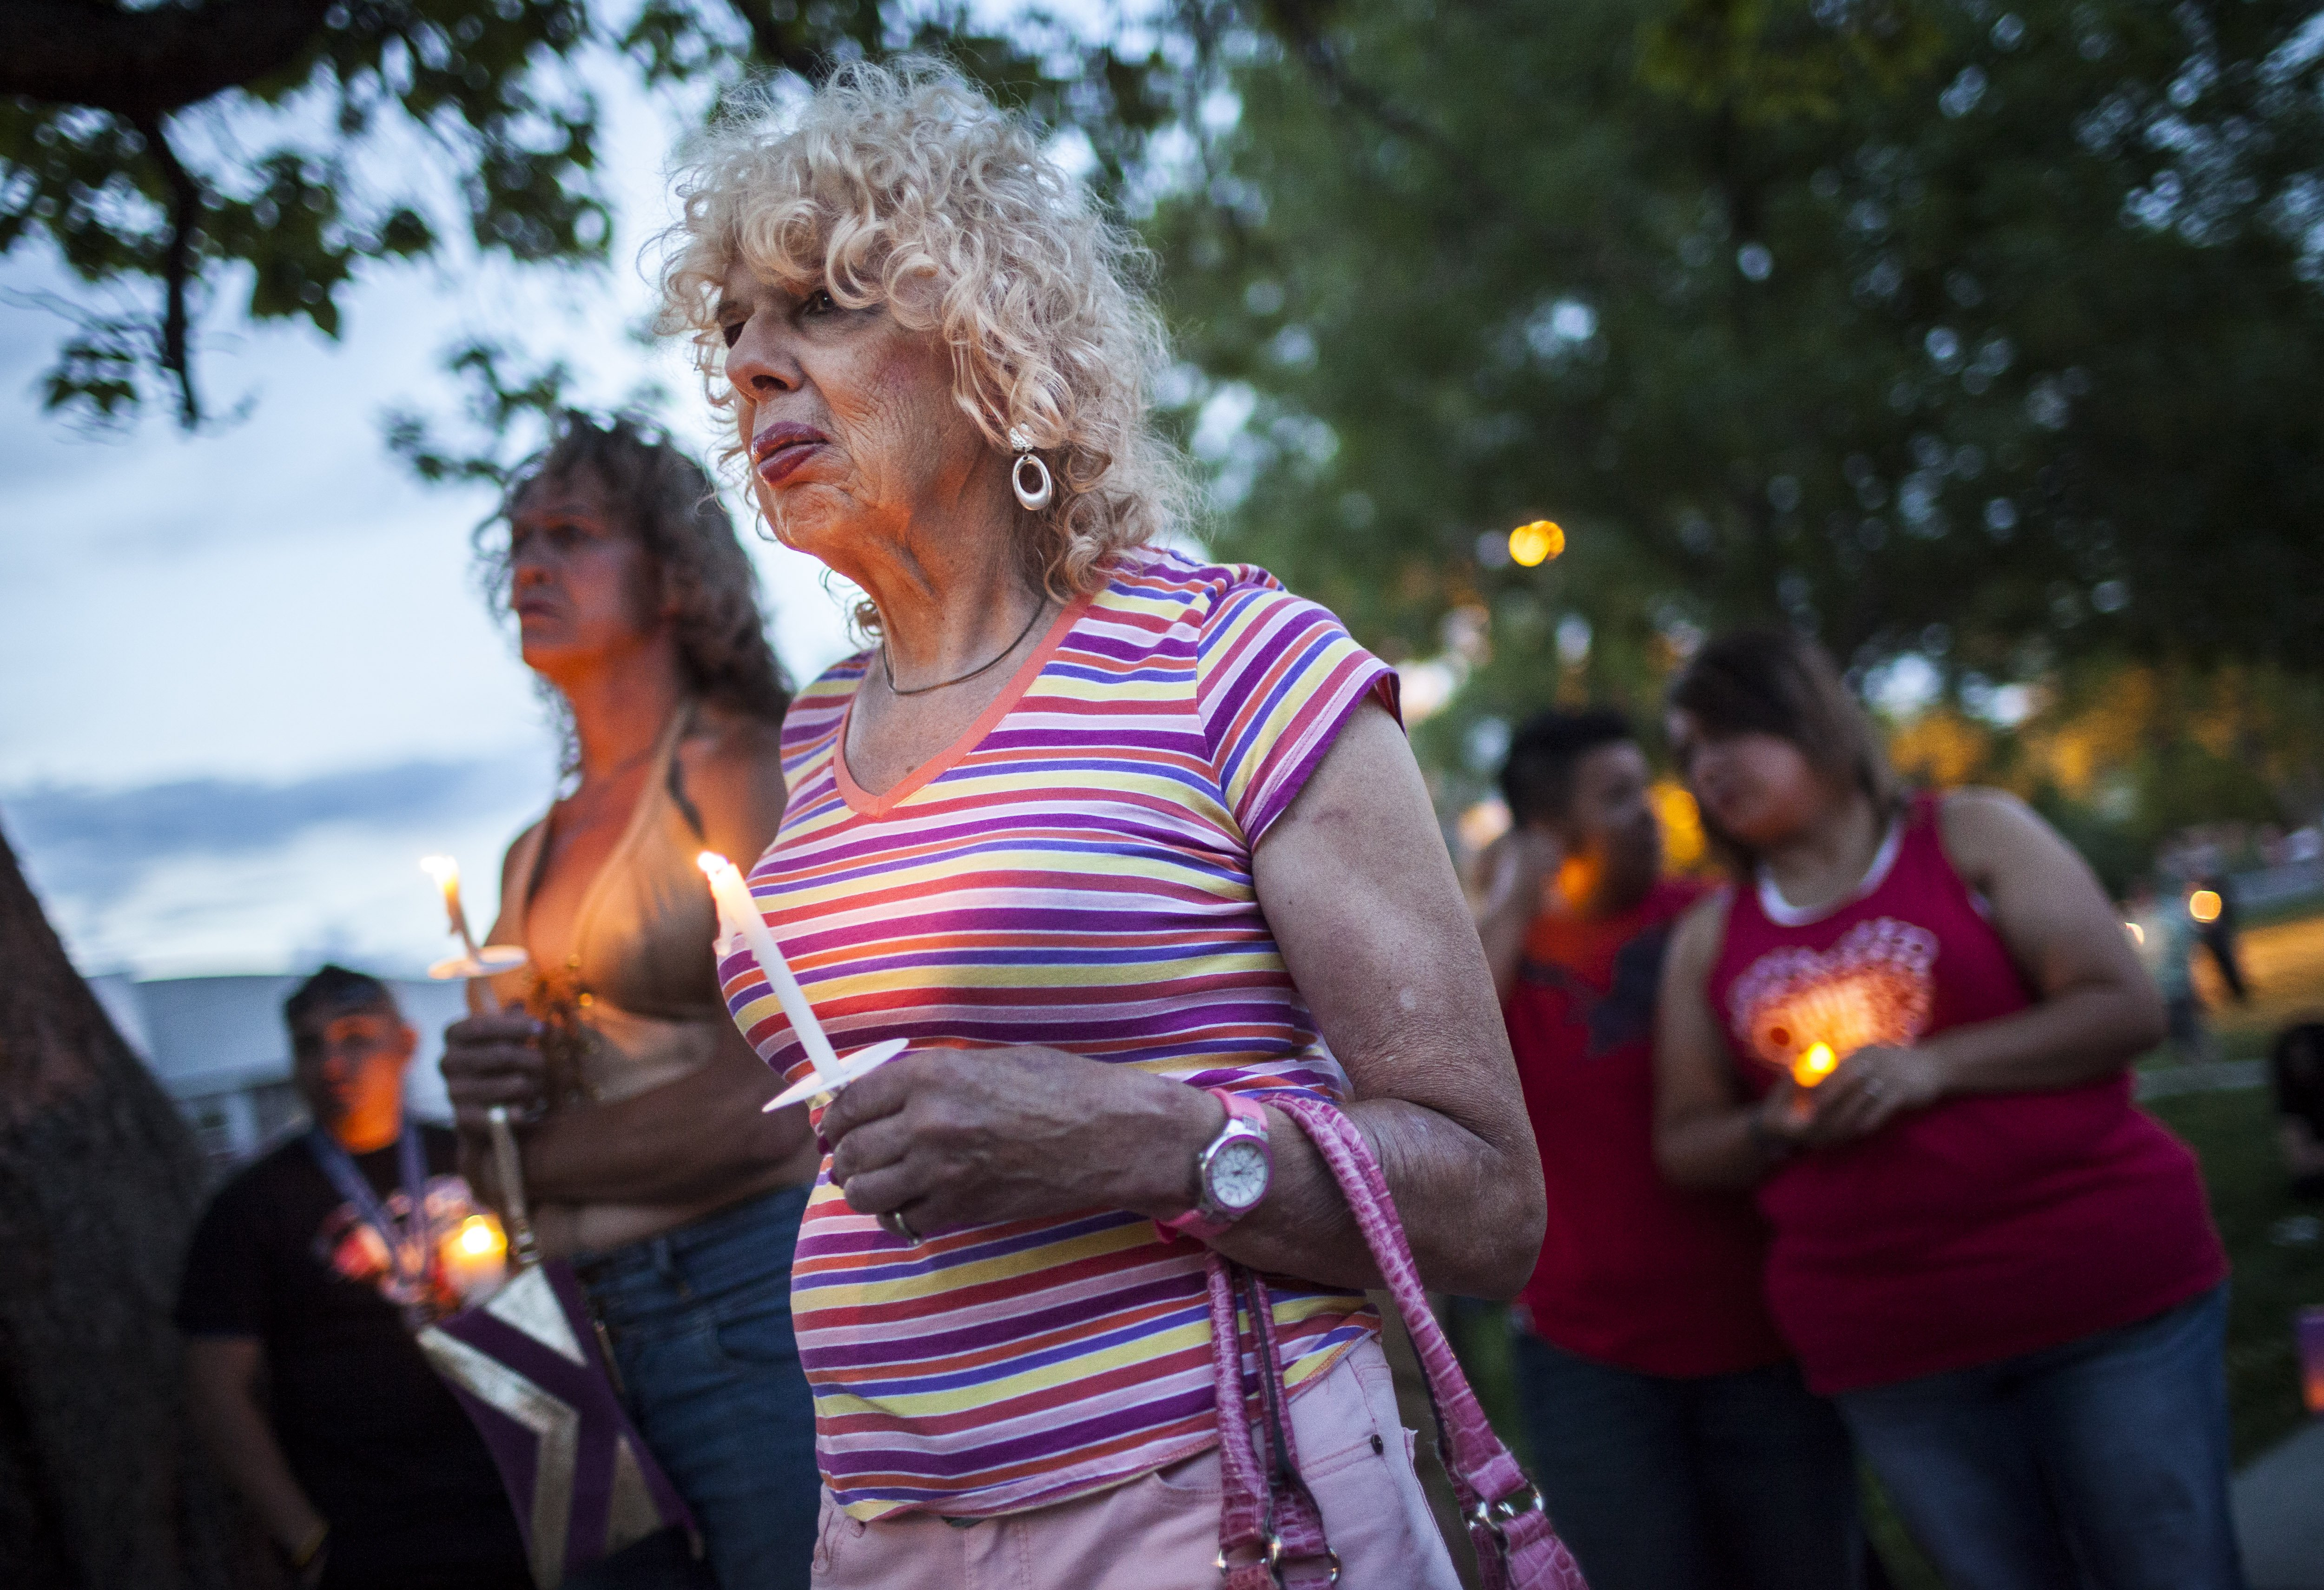 Denee Mallon, center, joins a candlelight vigil organized by Albuquerque Pride in Albuquerque, N.M on May 29, 2014. A U.S. Department of Health and Services review board ruled on May 30, in favor of Mallon, a 74-year-old Army veteran, whose request to have Medicare pay for her genital reconstruction was denied two years ago.